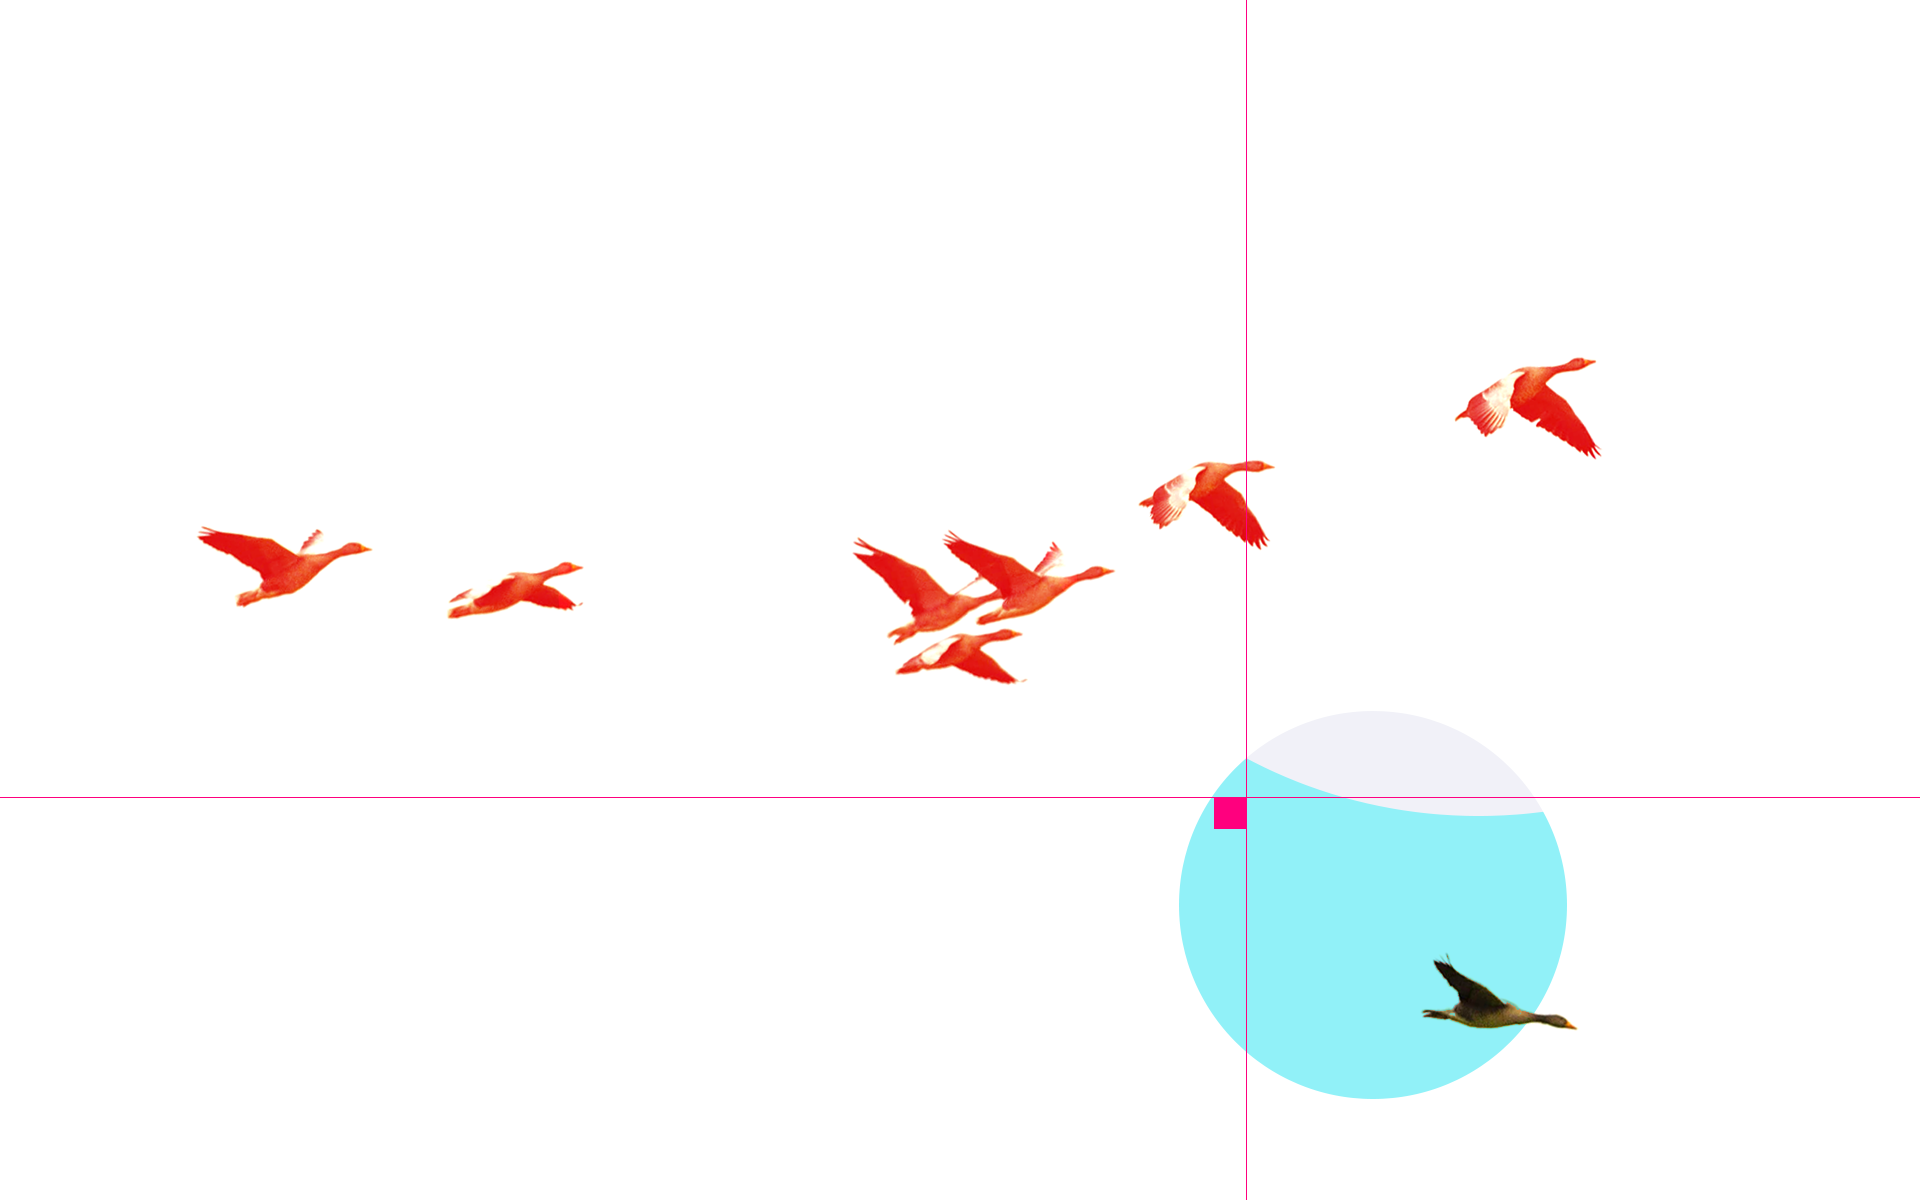 A semi-abstract image of geese flying, with one going off in a different dirction